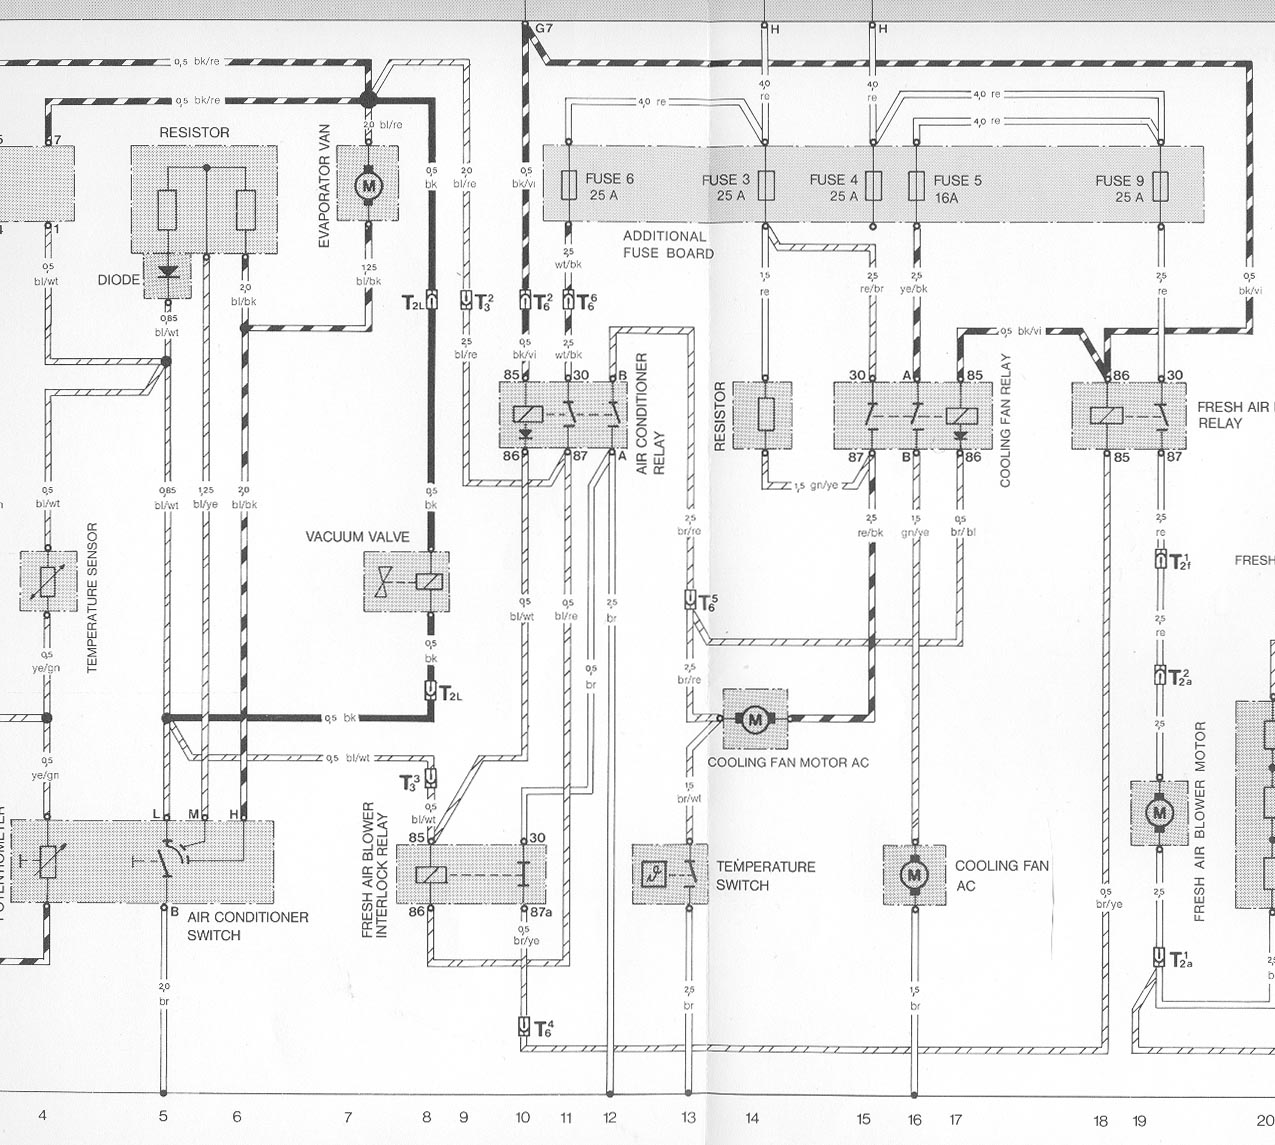 Superb Download 1984 Nissan 300Zx Circuit Diagram Pdf Manual 1 Page Monang Recoveryedb Wiring Schematic Monangrecoveryedborg